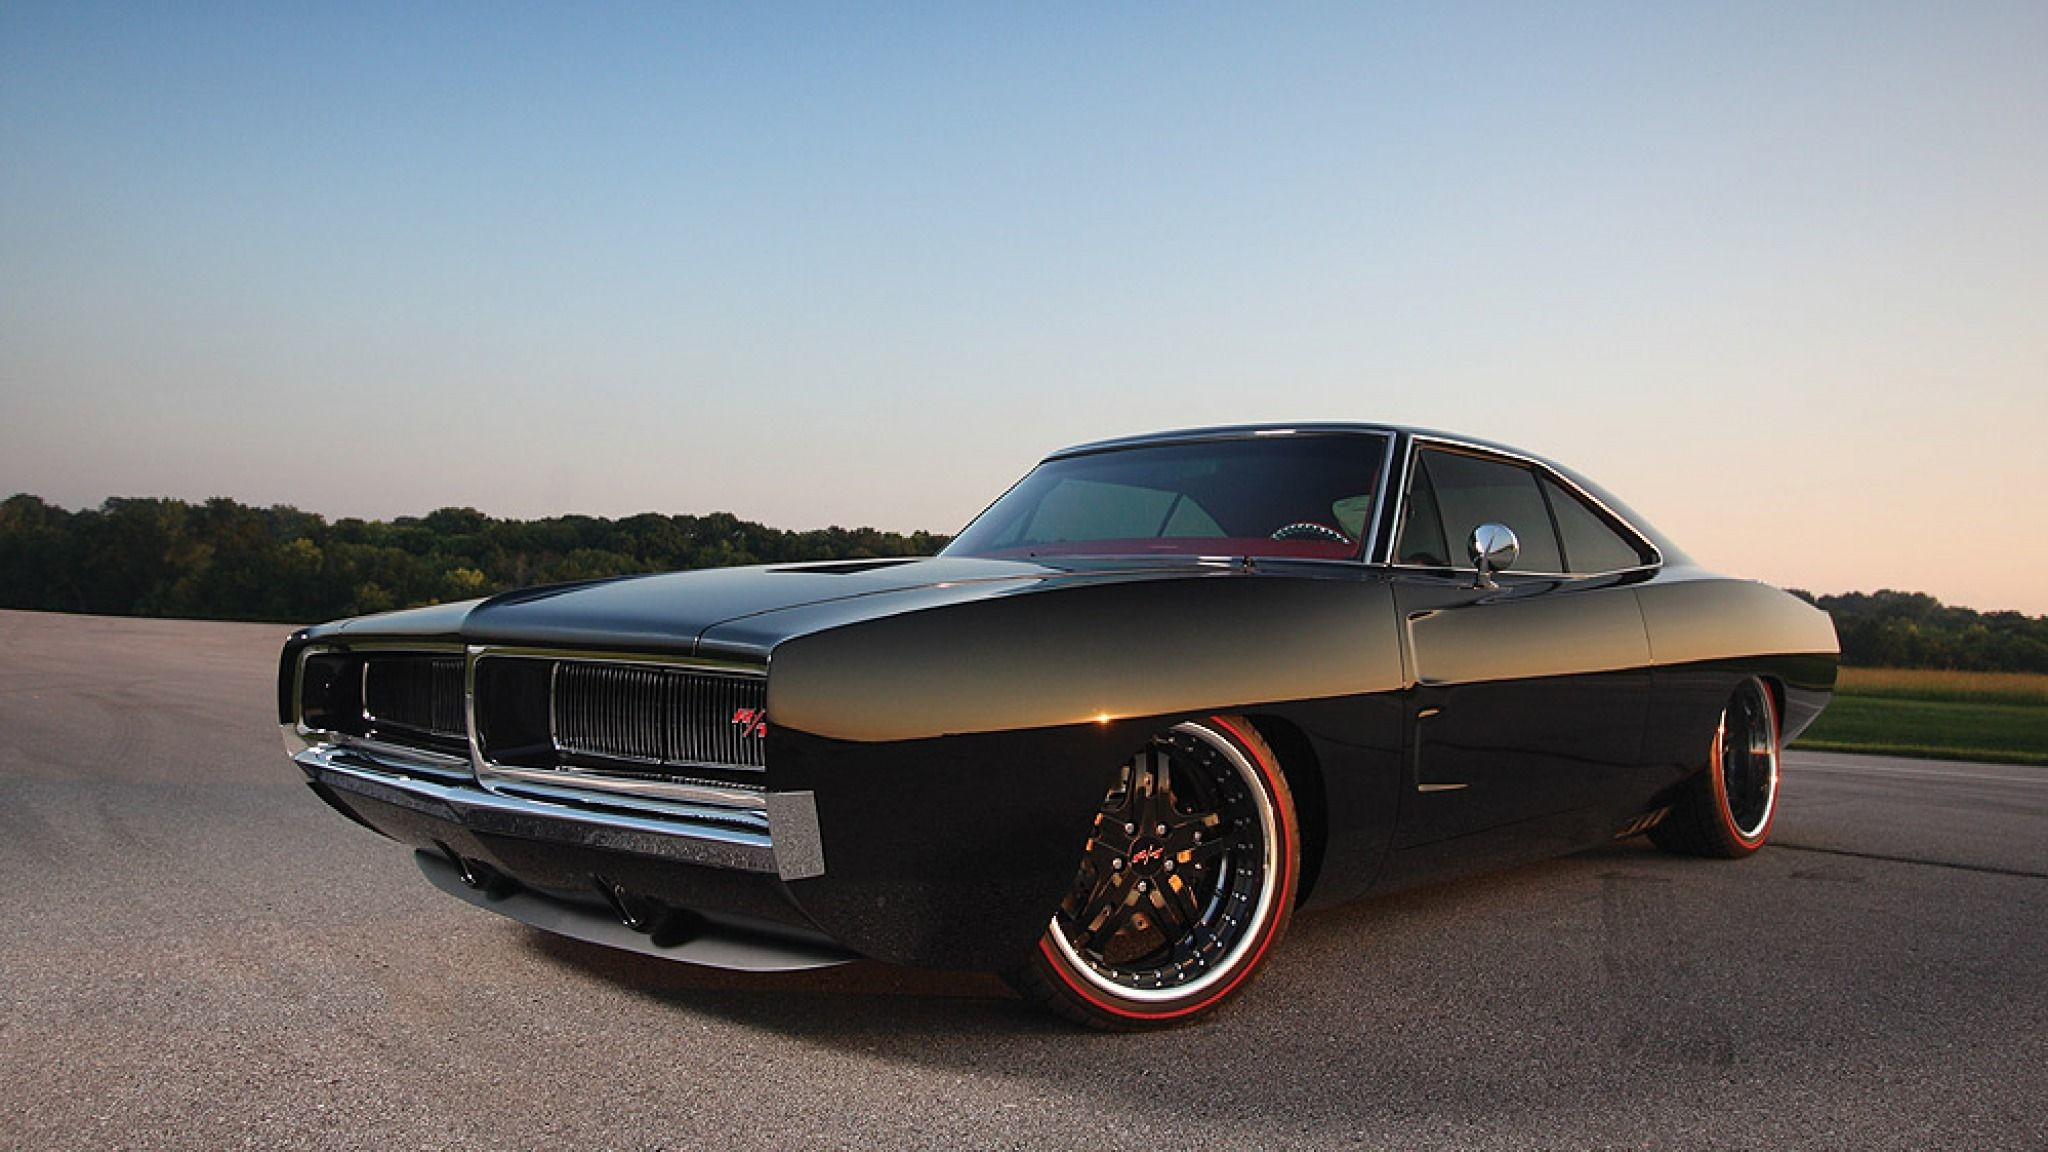 2048x1152 Dodge Charger Wallpapers | HD Wallpapers | Pinterest | Dodge charger, Dodge  and Hd wallpaper